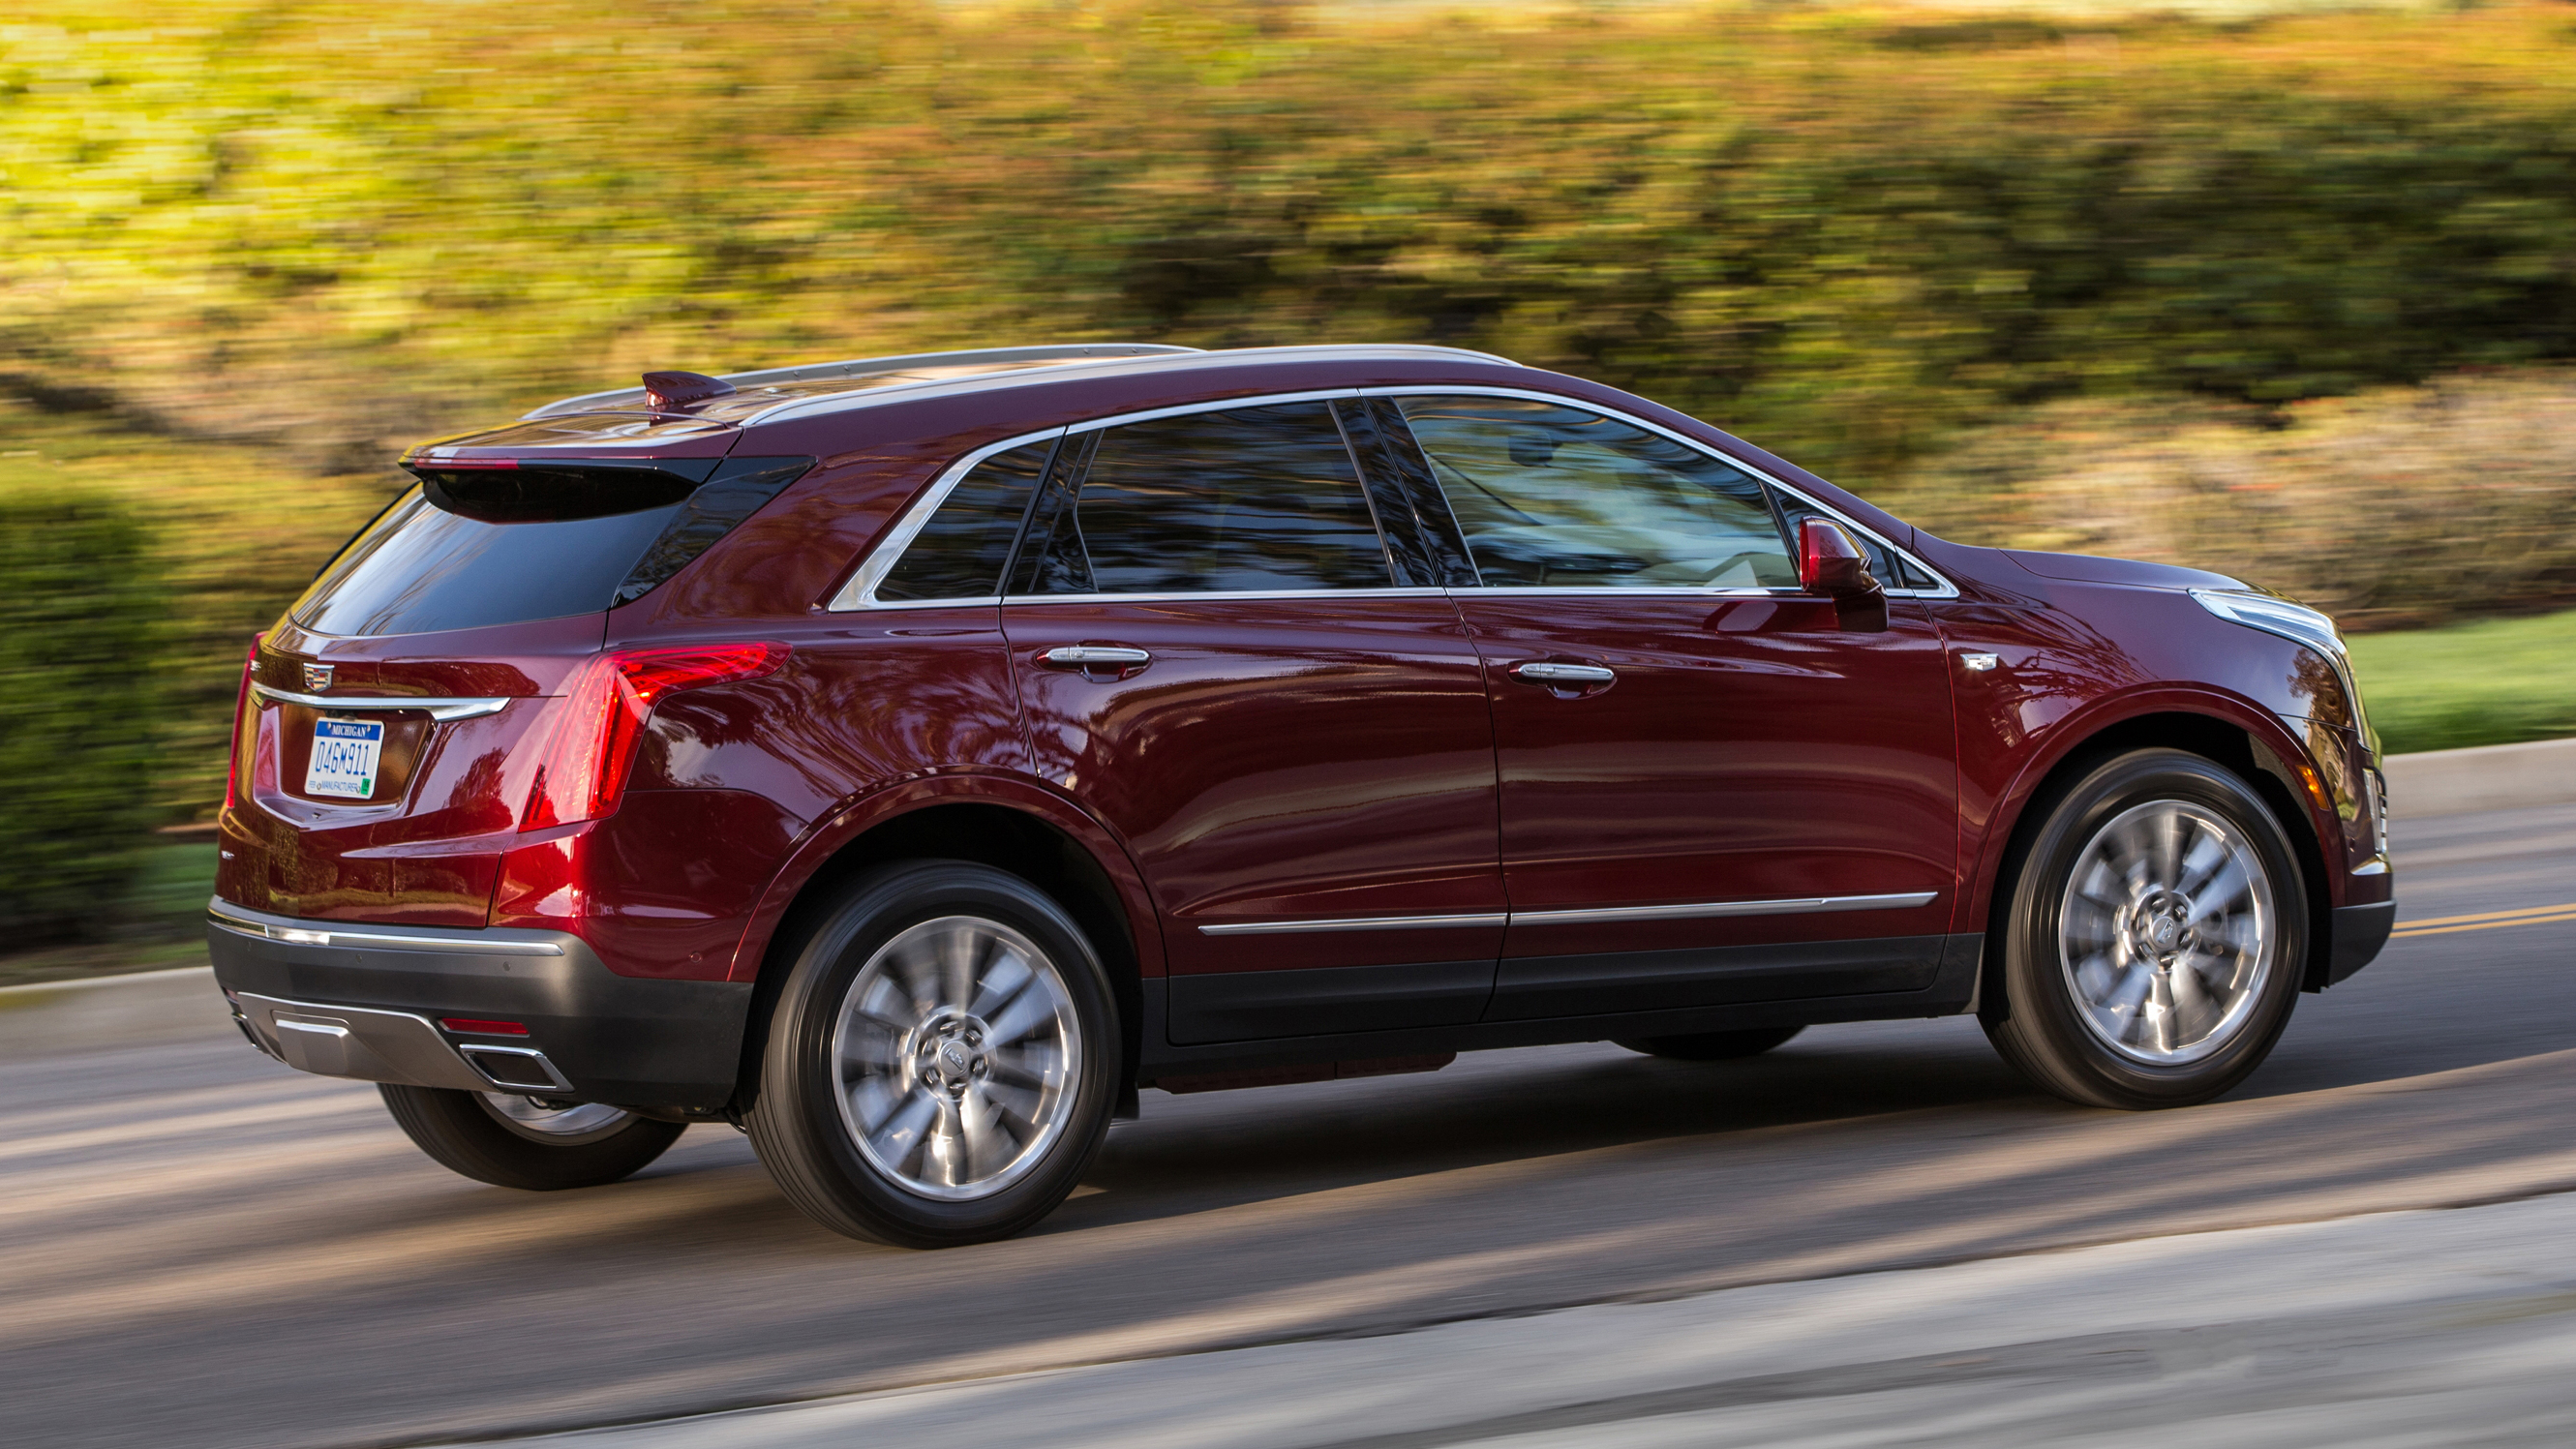 prevnext crossover the reviews macan s caddy cadillac gear top rival and car review first drive